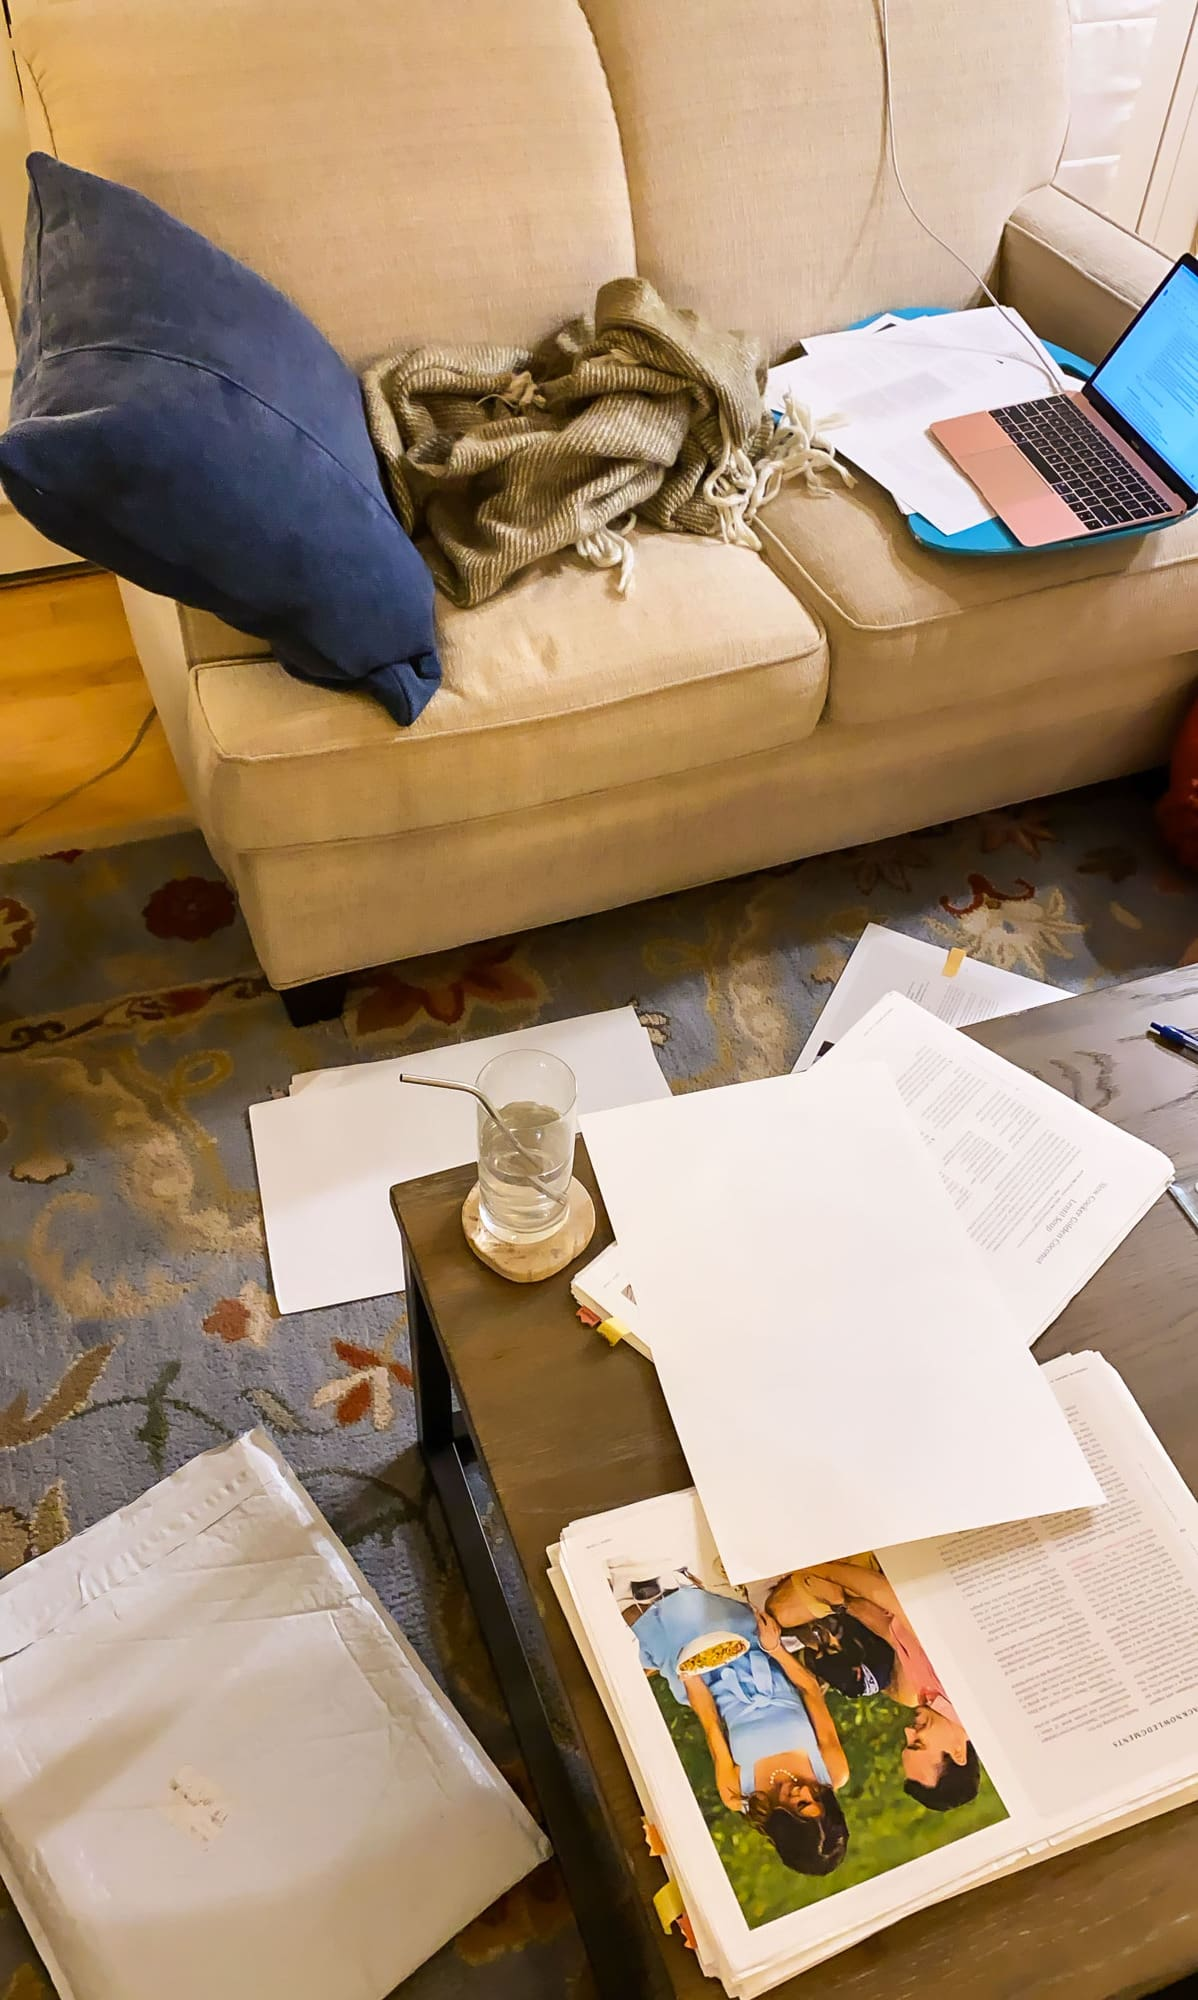 Couch covered in papers with a laptop